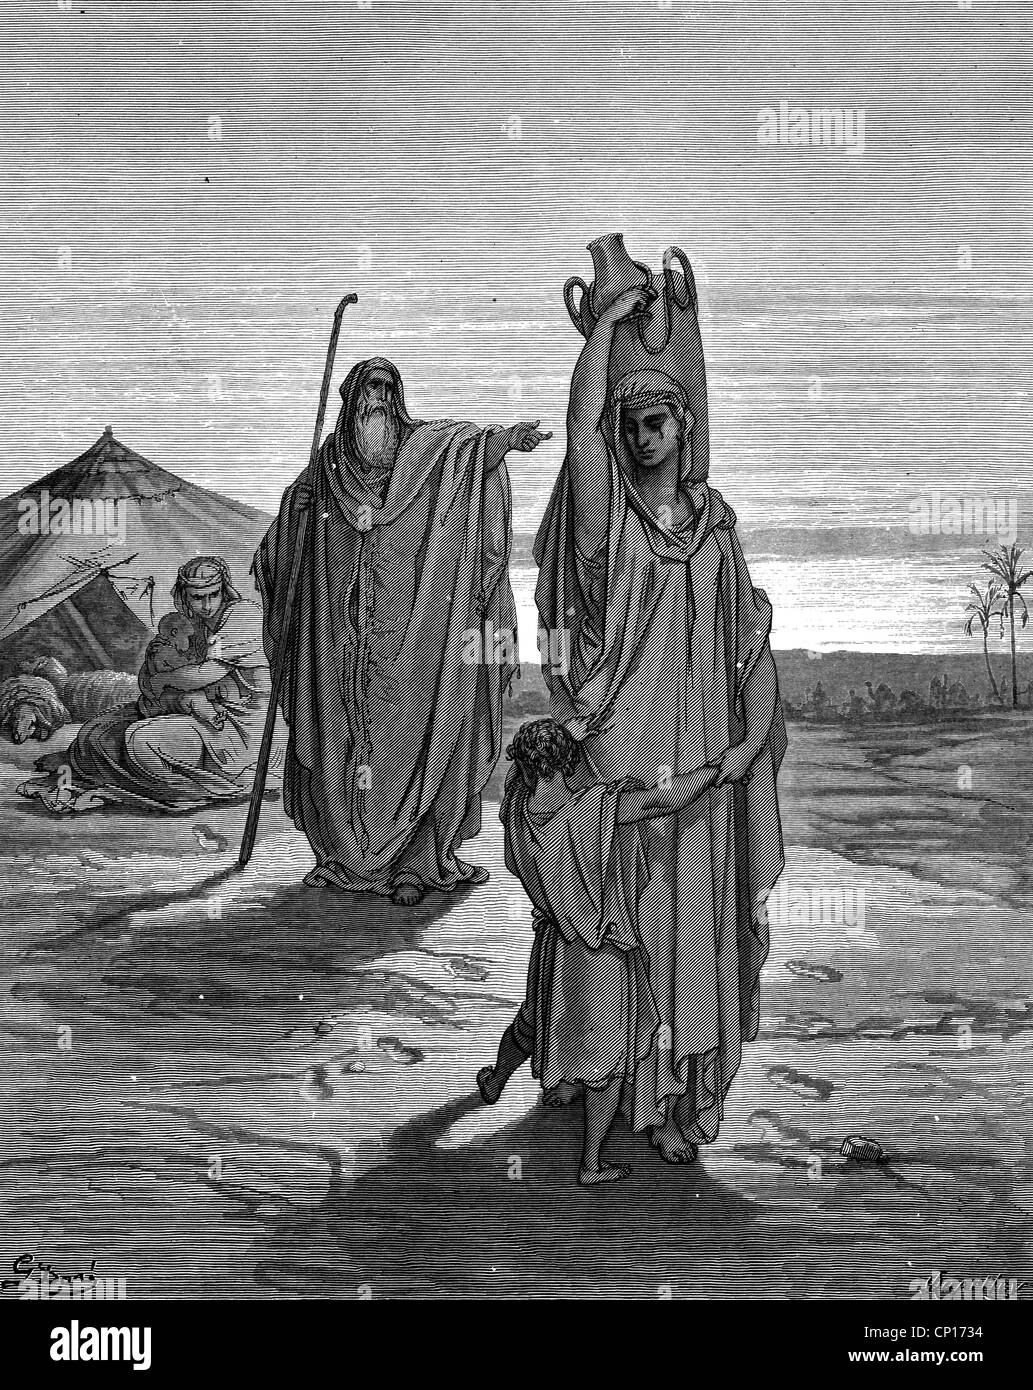 religion, biblical scenes, 'Expulsion of Ismael and his Mother', wood engraving to the Bible by Gustave - Stock Image